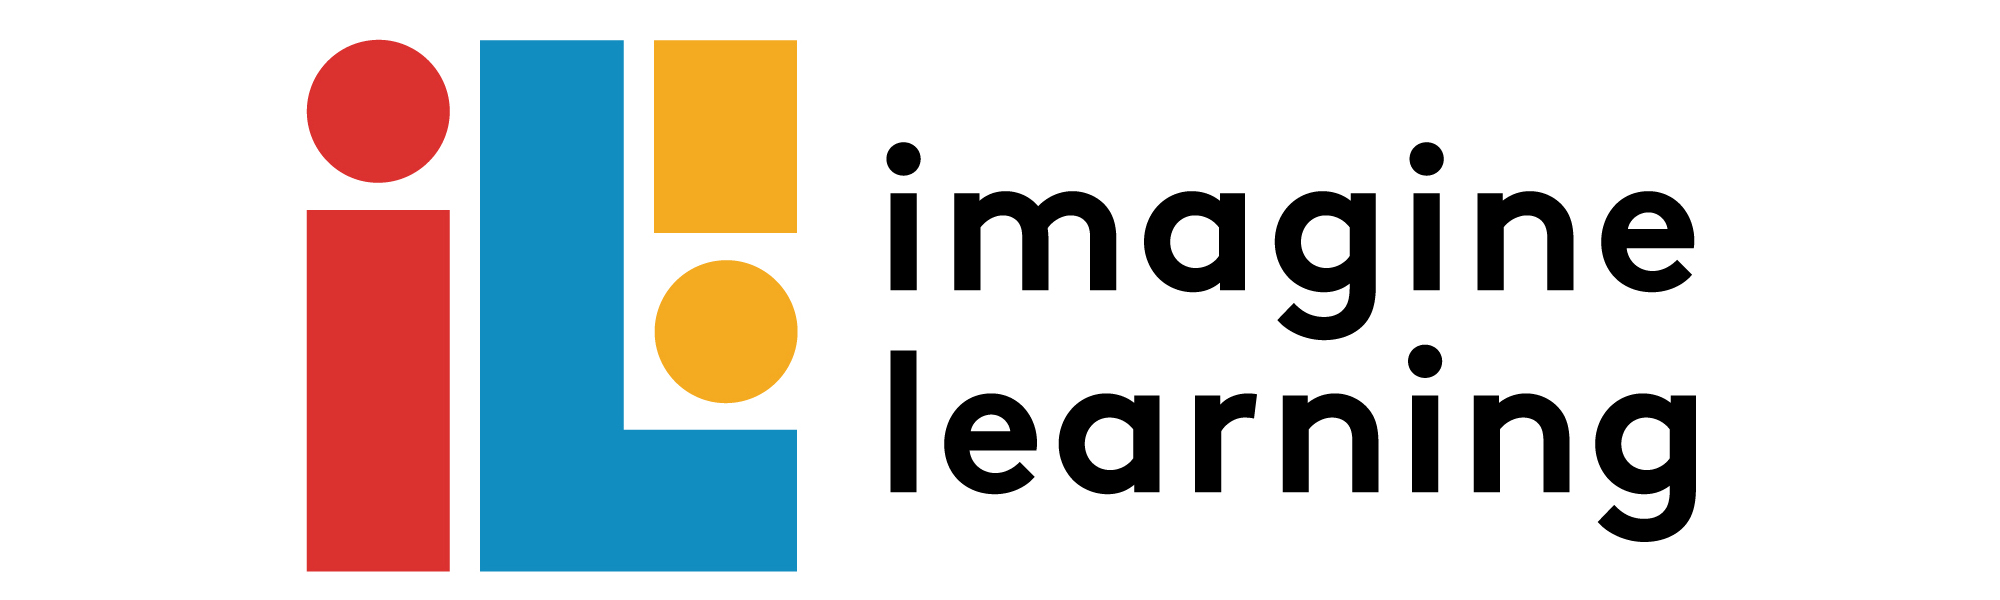 ImagineLearning_2021-2